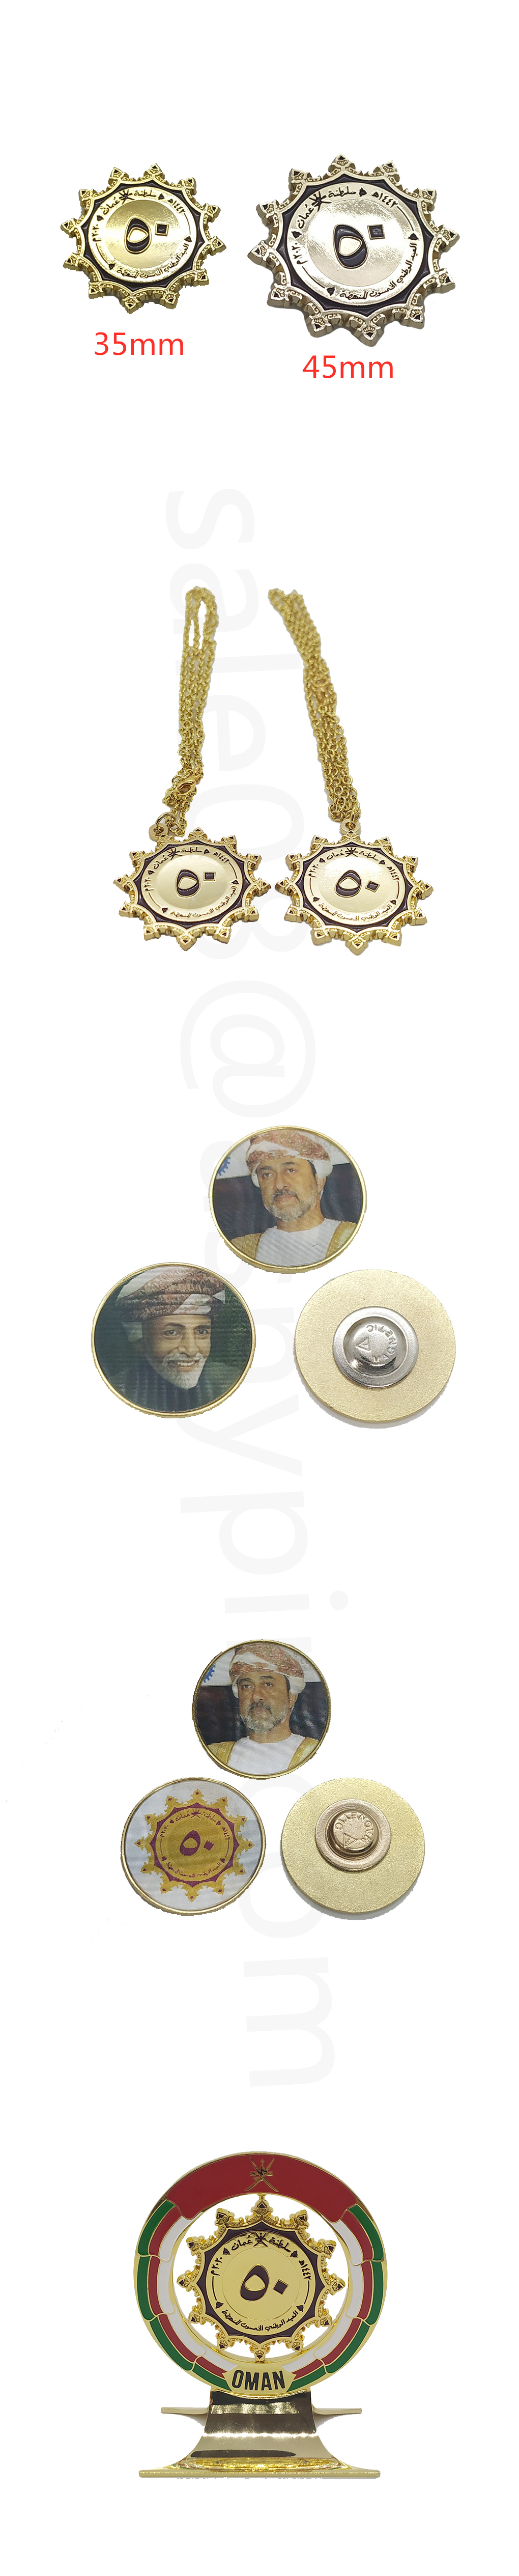 Oman 50th National Day car emblem metal car badge, ready stock